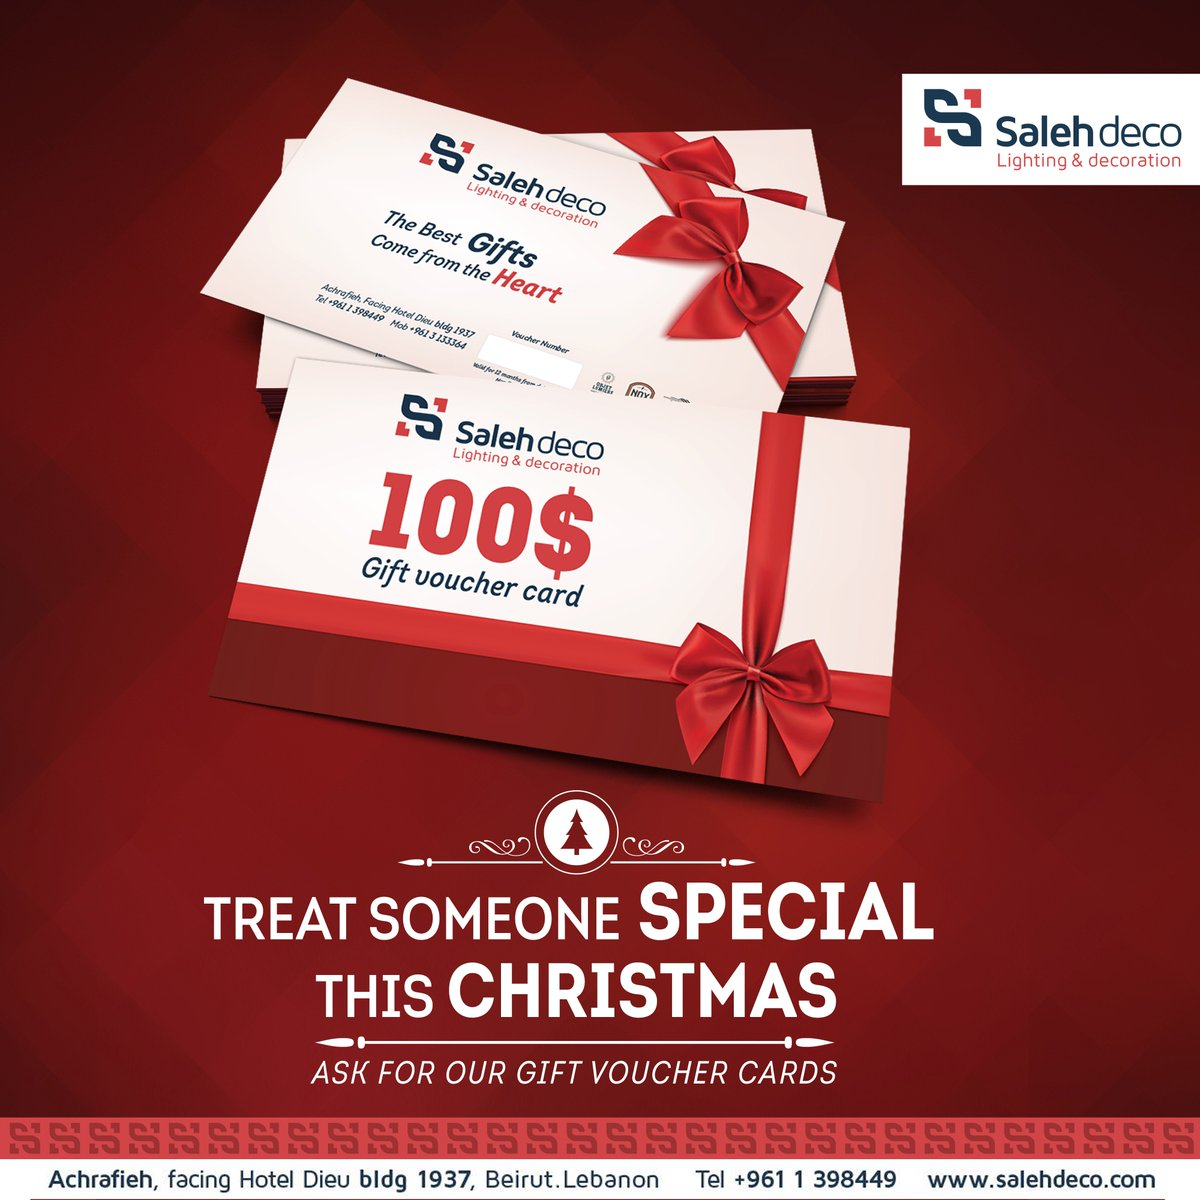 Treat someone #special this #Christmas! Ask for our #gift #voucher cards  Tel: 01398449 #HappyHolidays #salehdeco https://t.co/lbNqpFlFdu